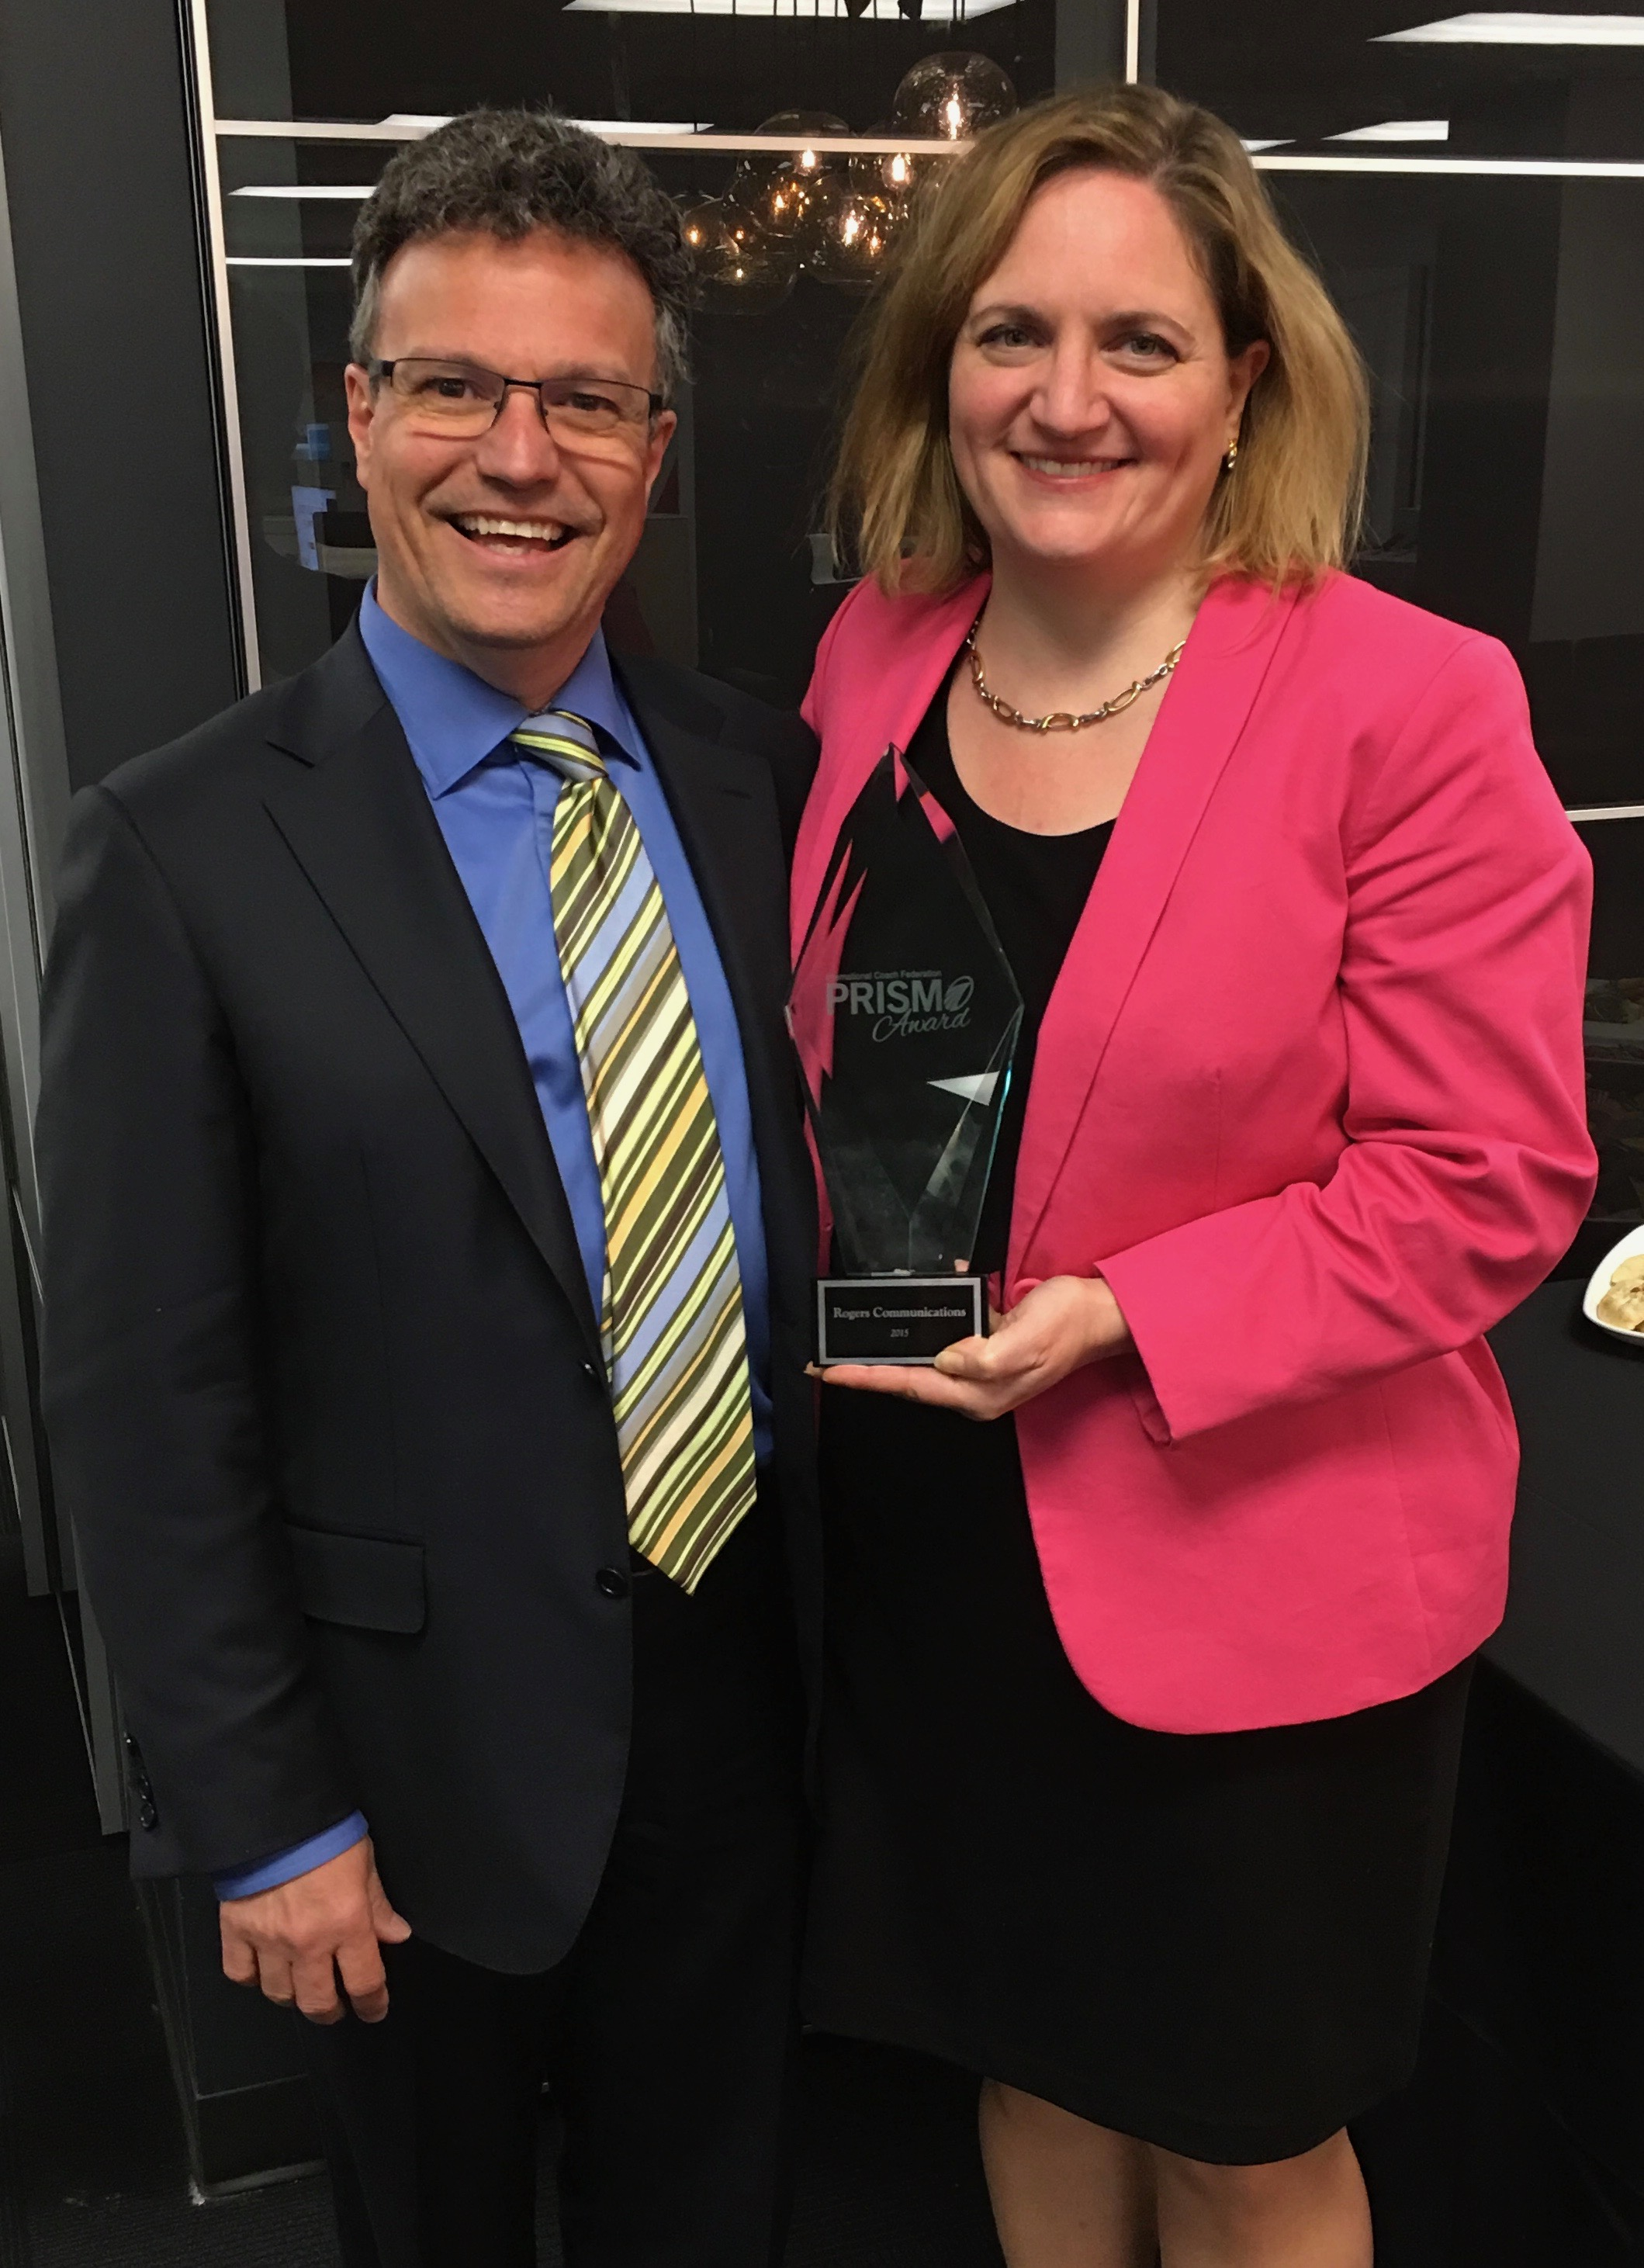 Photo with Prism winner Silvia Lulka, Director at  Rogers Communications  where Dominic was engaged by  Essential Impact  to support the delivery of their Global Prism Award winning Excelerator coaching program. 600 directors and over 2500 managers have been trained to be effective coaches and dozens have become credentialed coaches through the International Coach Federation.